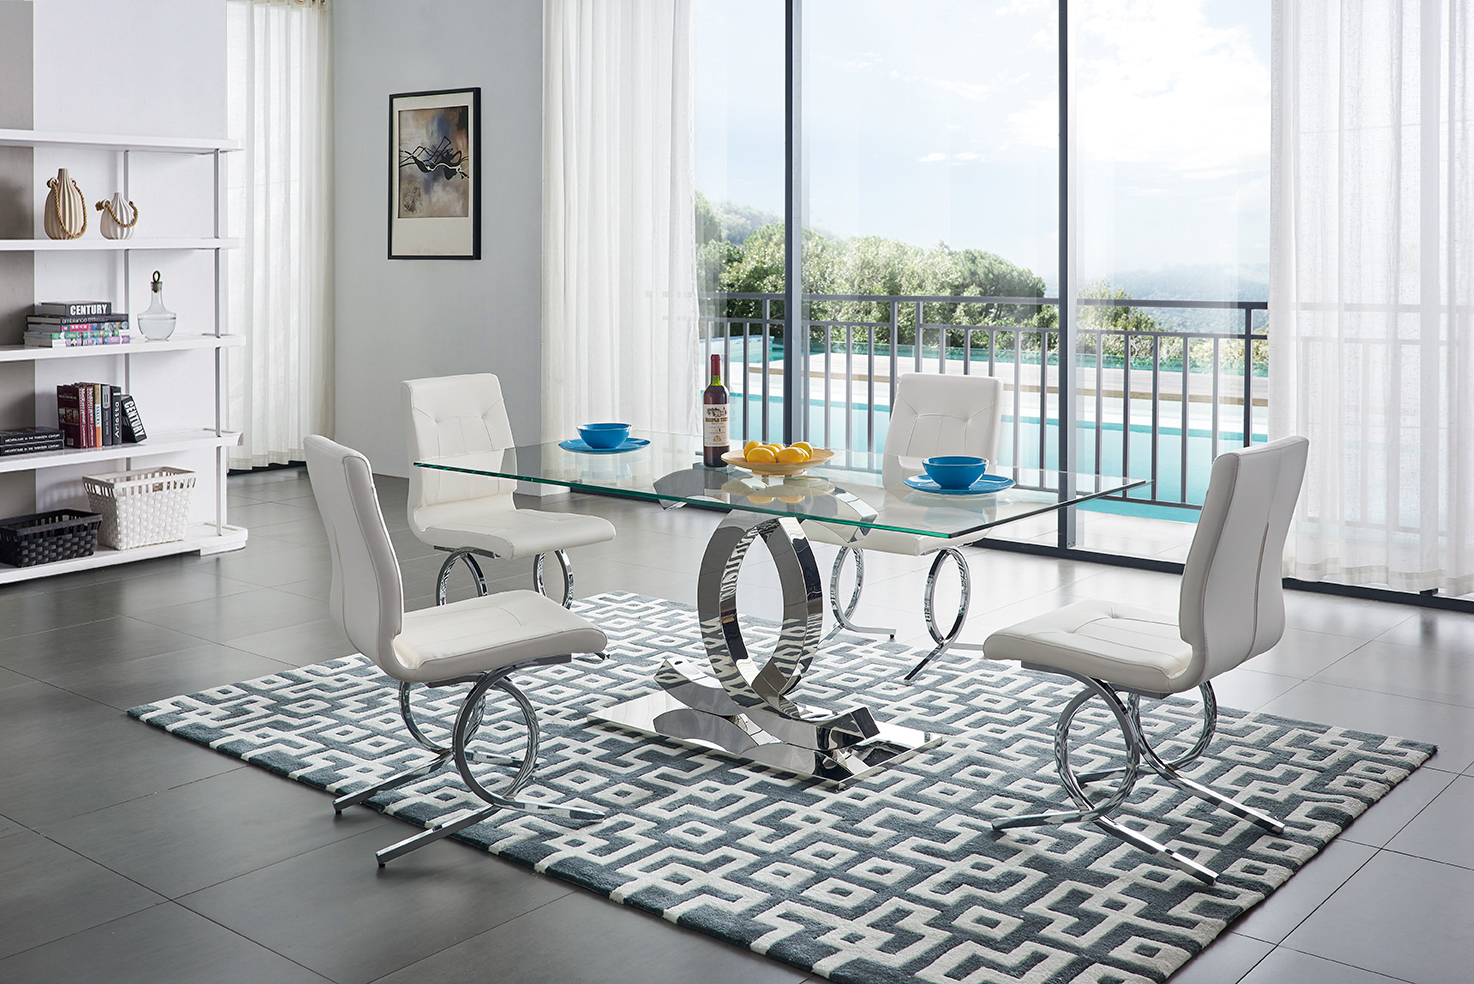 Affordable Modern Furniture Toronto Furniture Store Toronto Modern Italian Furniture Lavie Furniture